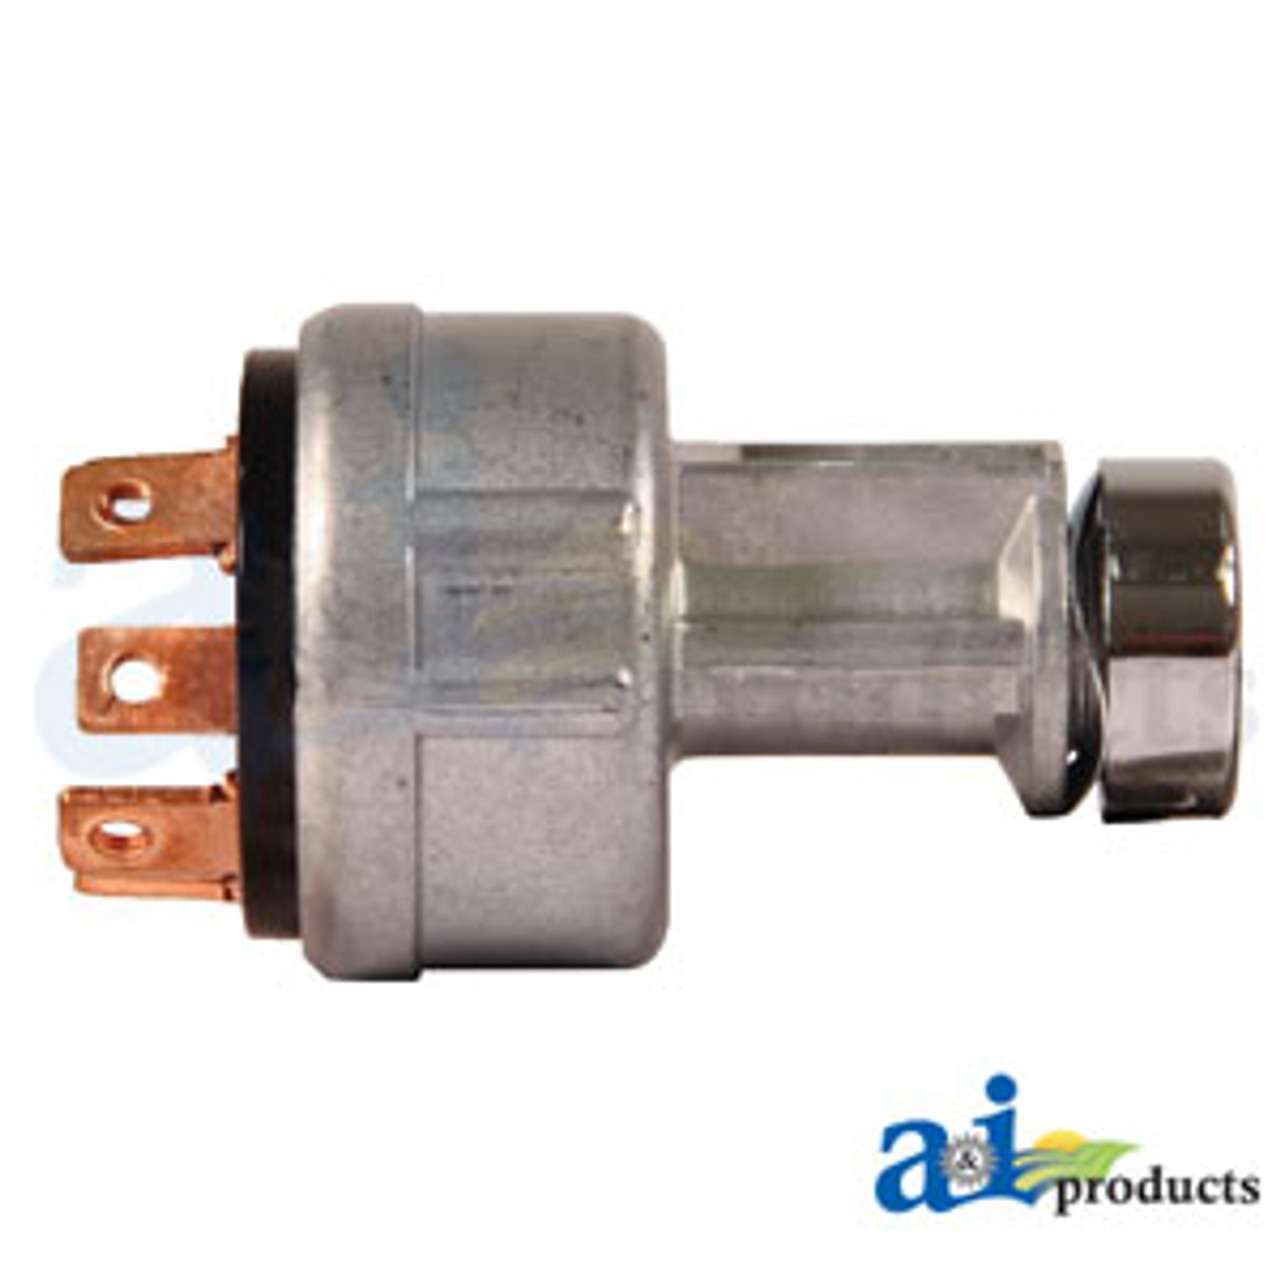 A&I Brand John Deere Ignition Switch with Keys CH11696